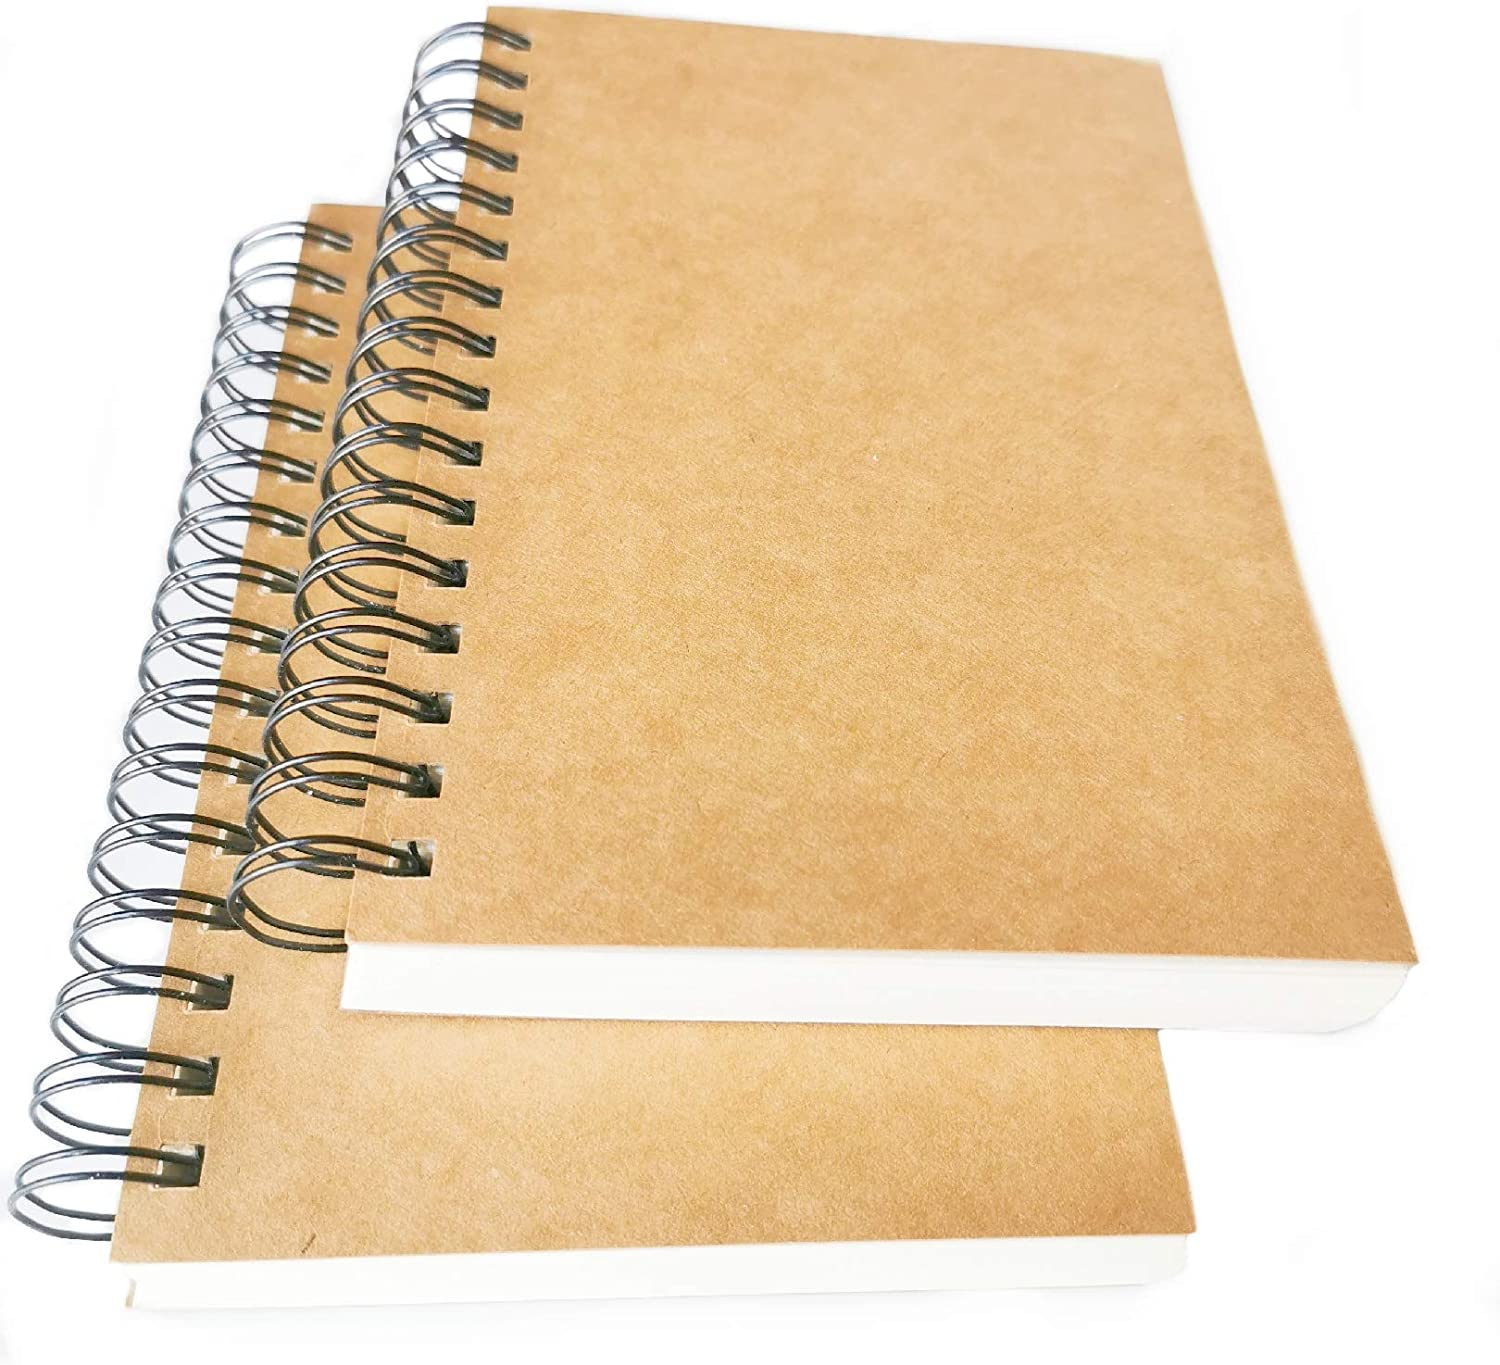 2-Pack A5 Blank Sketch Book Soft Cover Spiral Notebook Journal 120 Pages 5.7 x 8.3 Cream colored paper Blank Black-2pcs